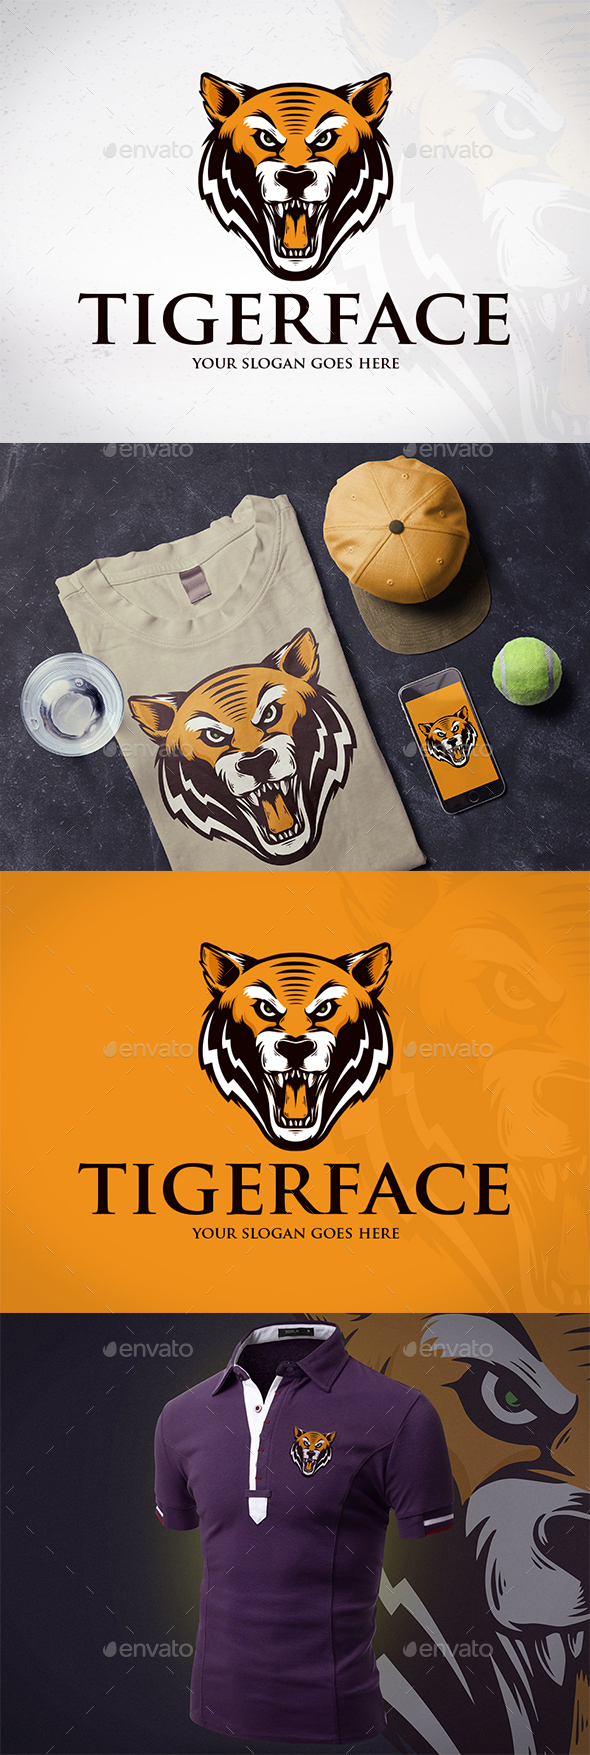 Wild Tiger Creative Logo - Animals Logo Templates